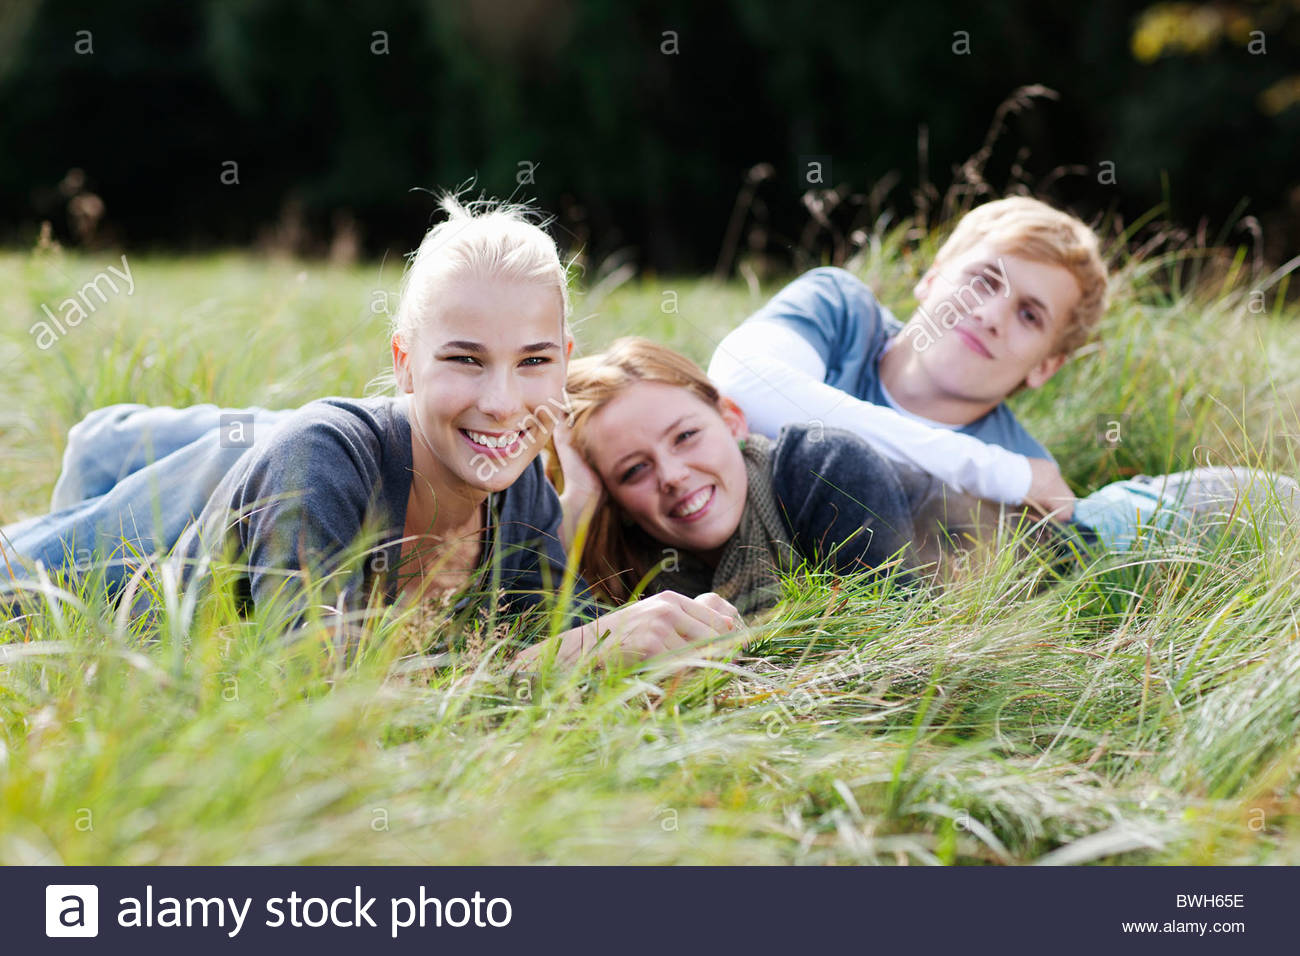 Three young persons laying in grass - Stock Image